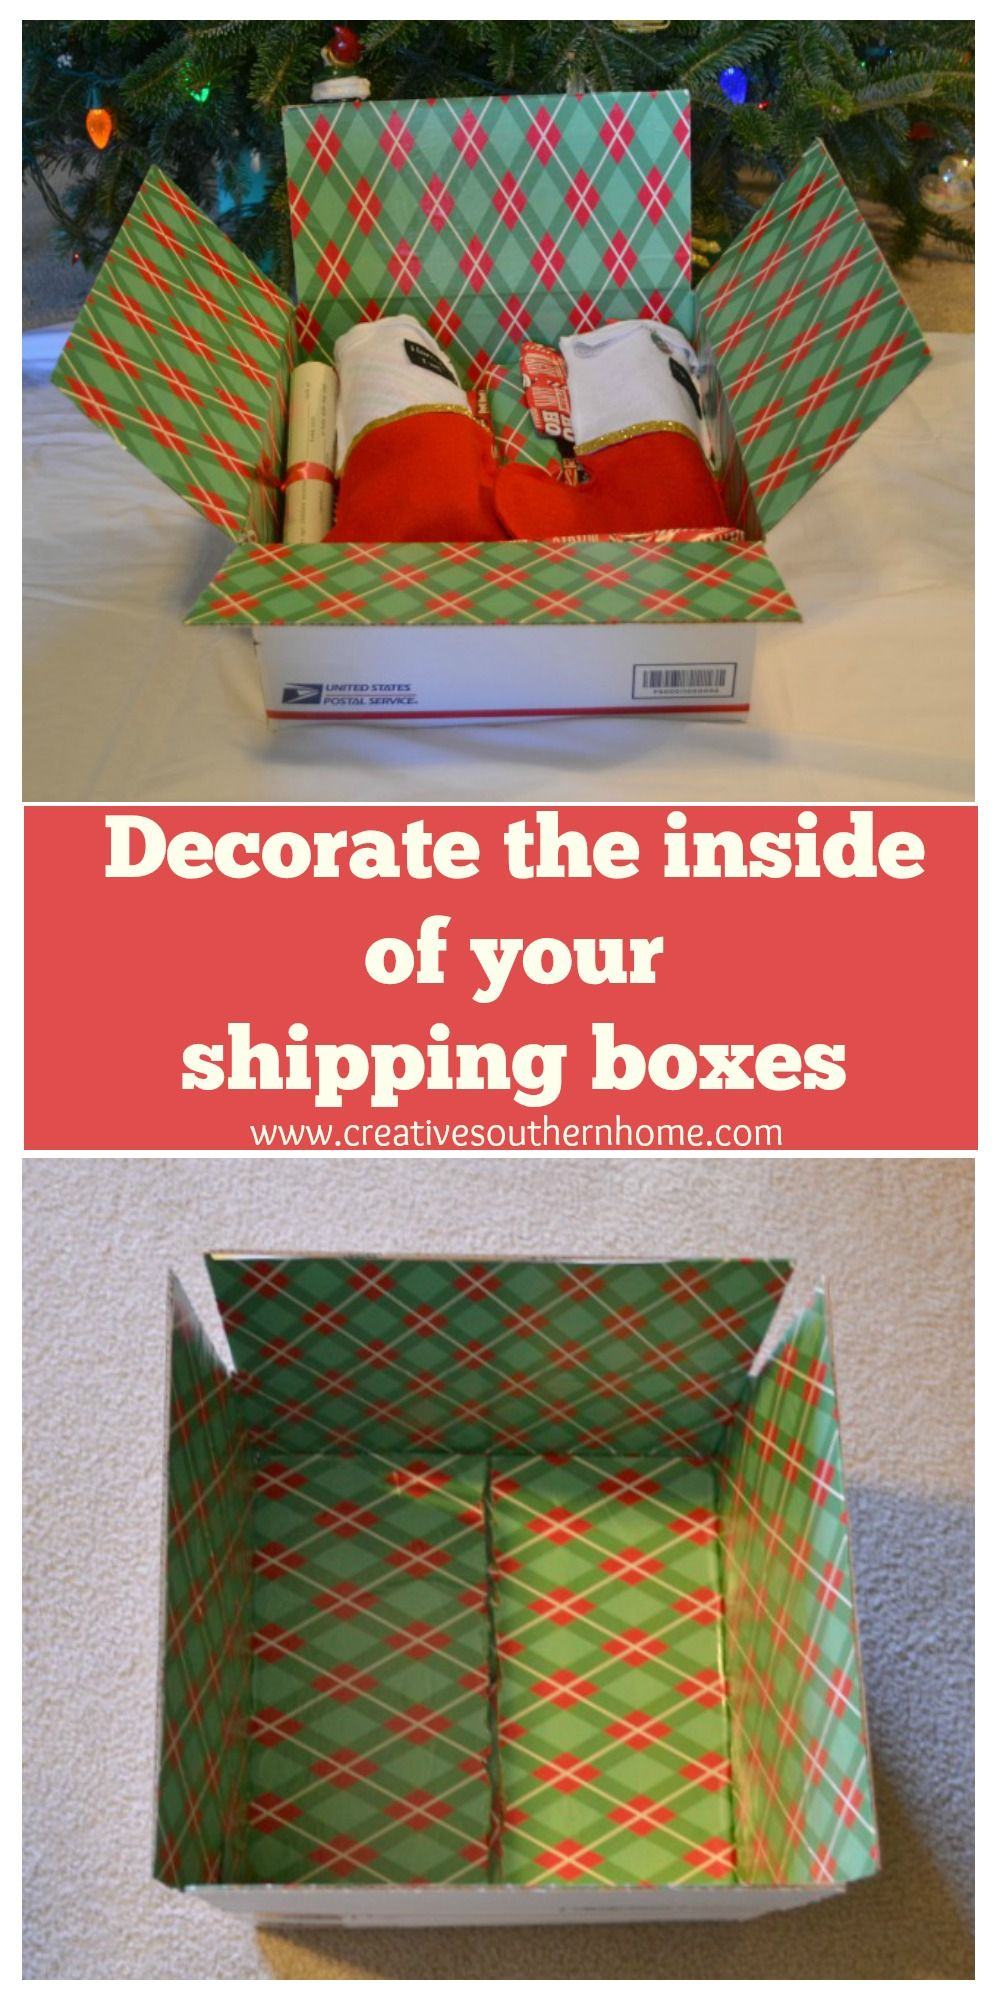 decorate the inside of your shipping boxes Care package